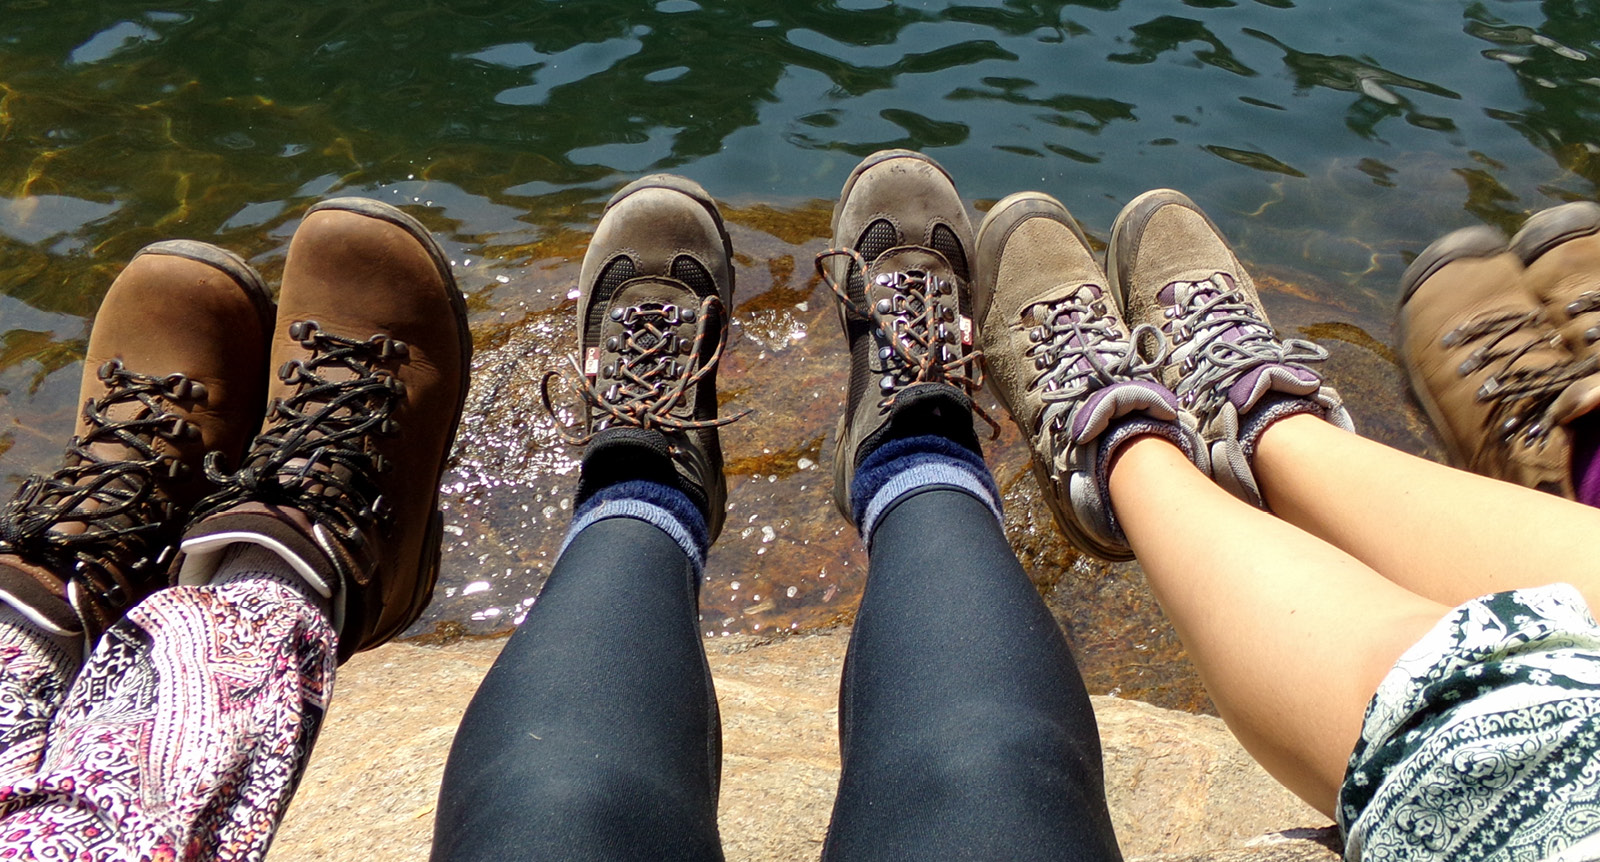 Footwear for expeditions